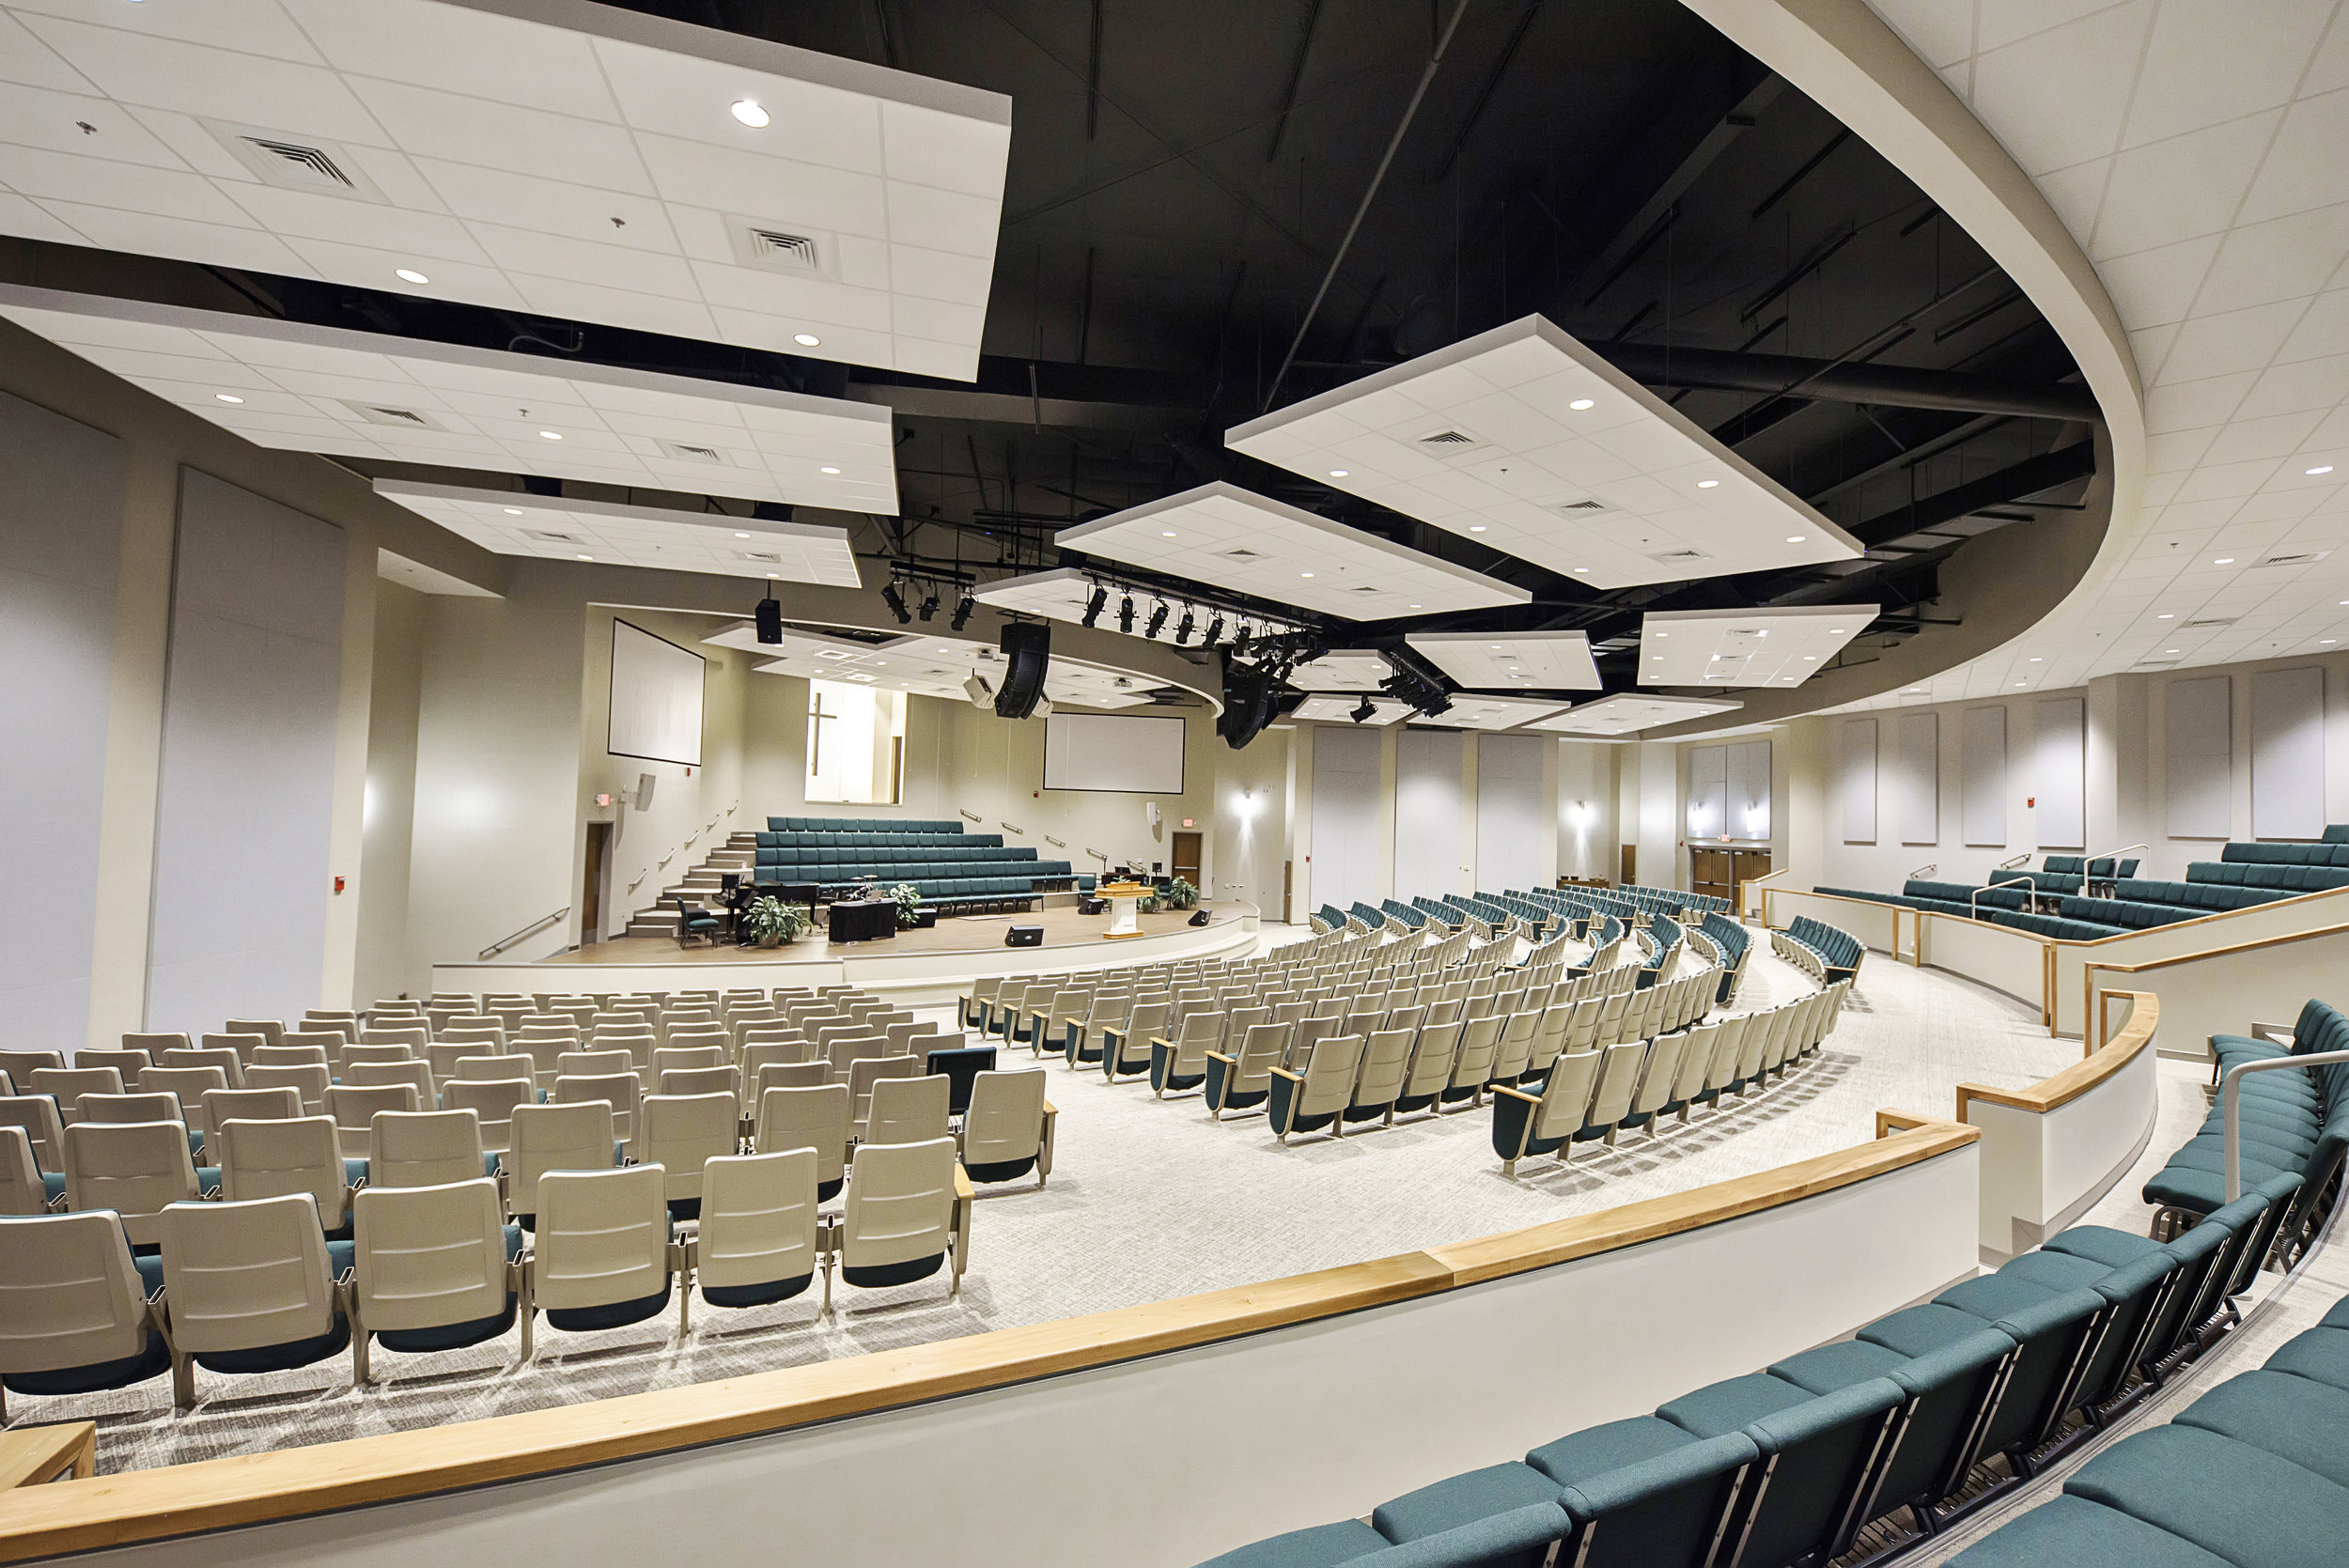 SUNNYSIDE BAPTIST WORSHIP CENTER - PHASE 1